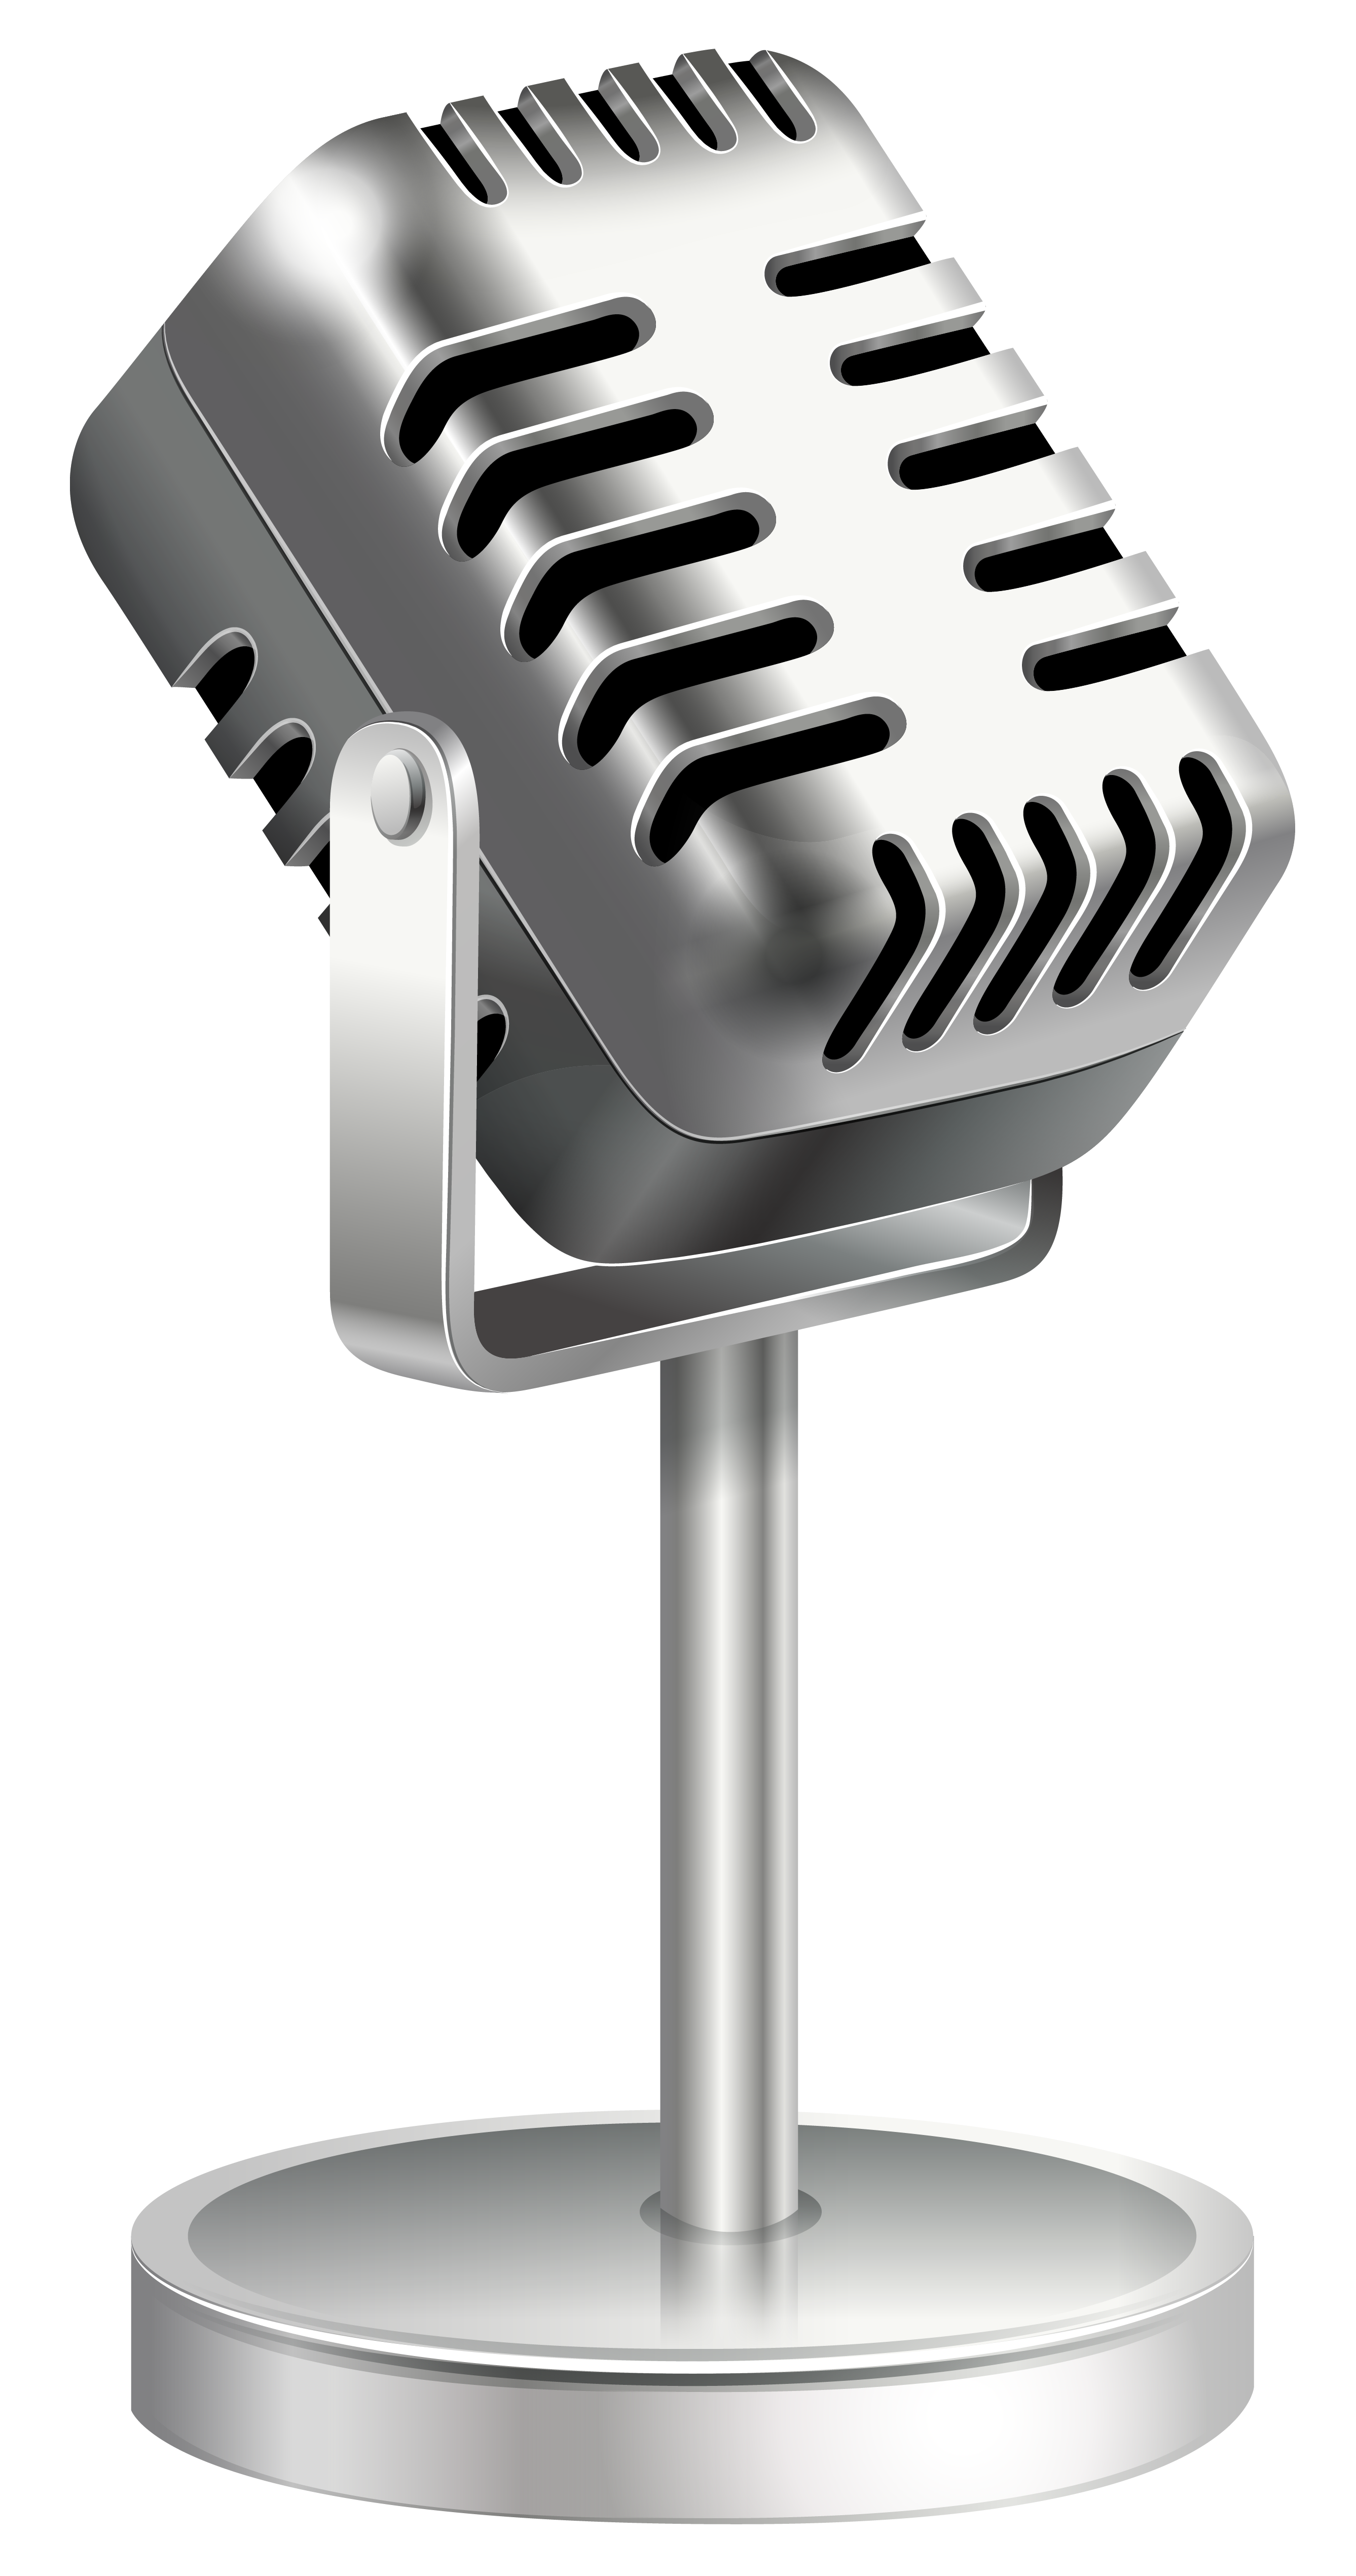 Microphone clipart png. Retro image gallery yopriceville